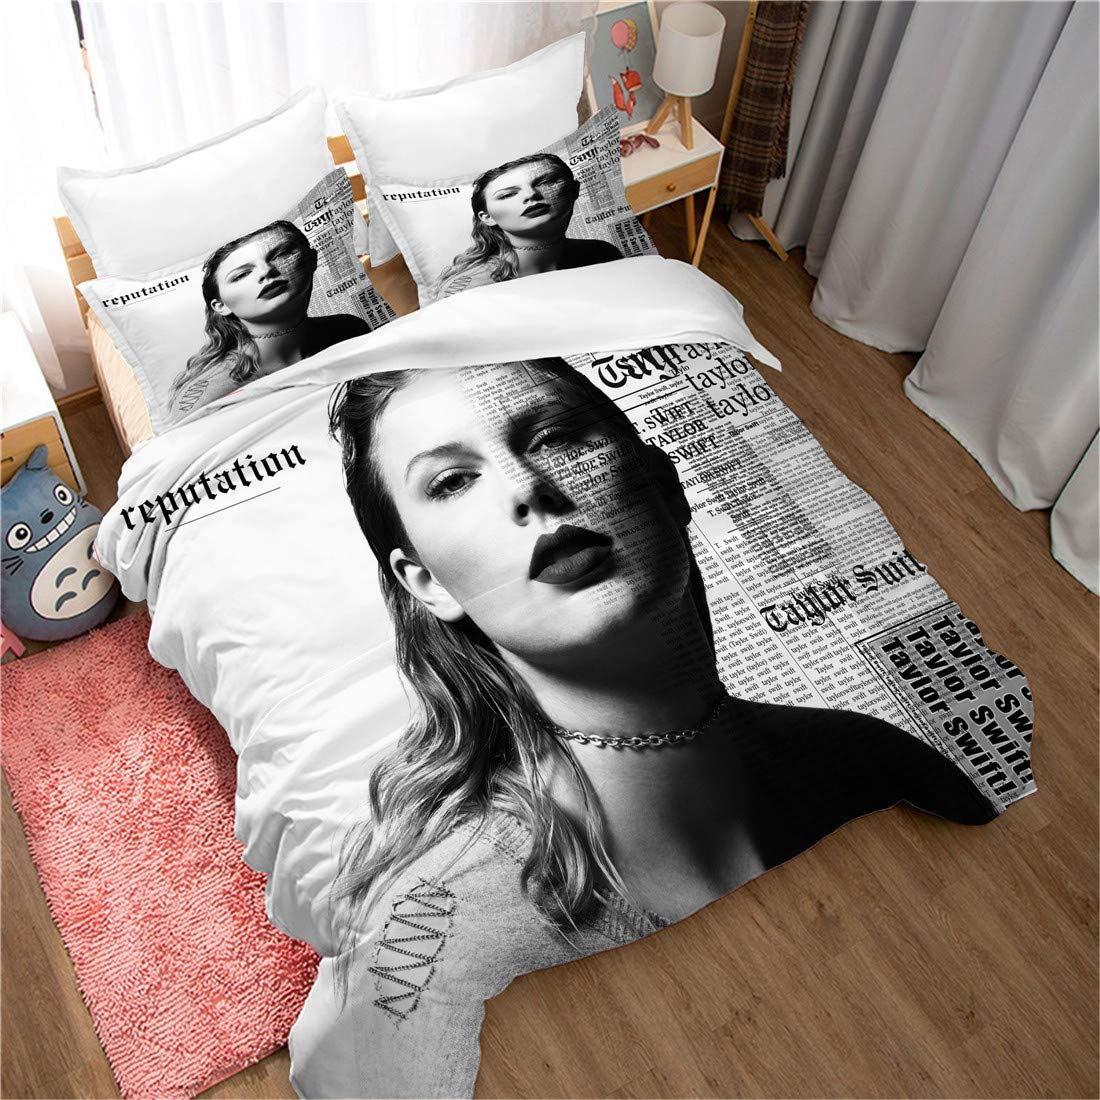 Beddinghome 3d Digital Printed Taylor Swift Duvet Cover Match Pillowcases Boys Girls Fans Bedroom Decor Bed Set 2 Pcs Twin Amazon In Home Kitchen